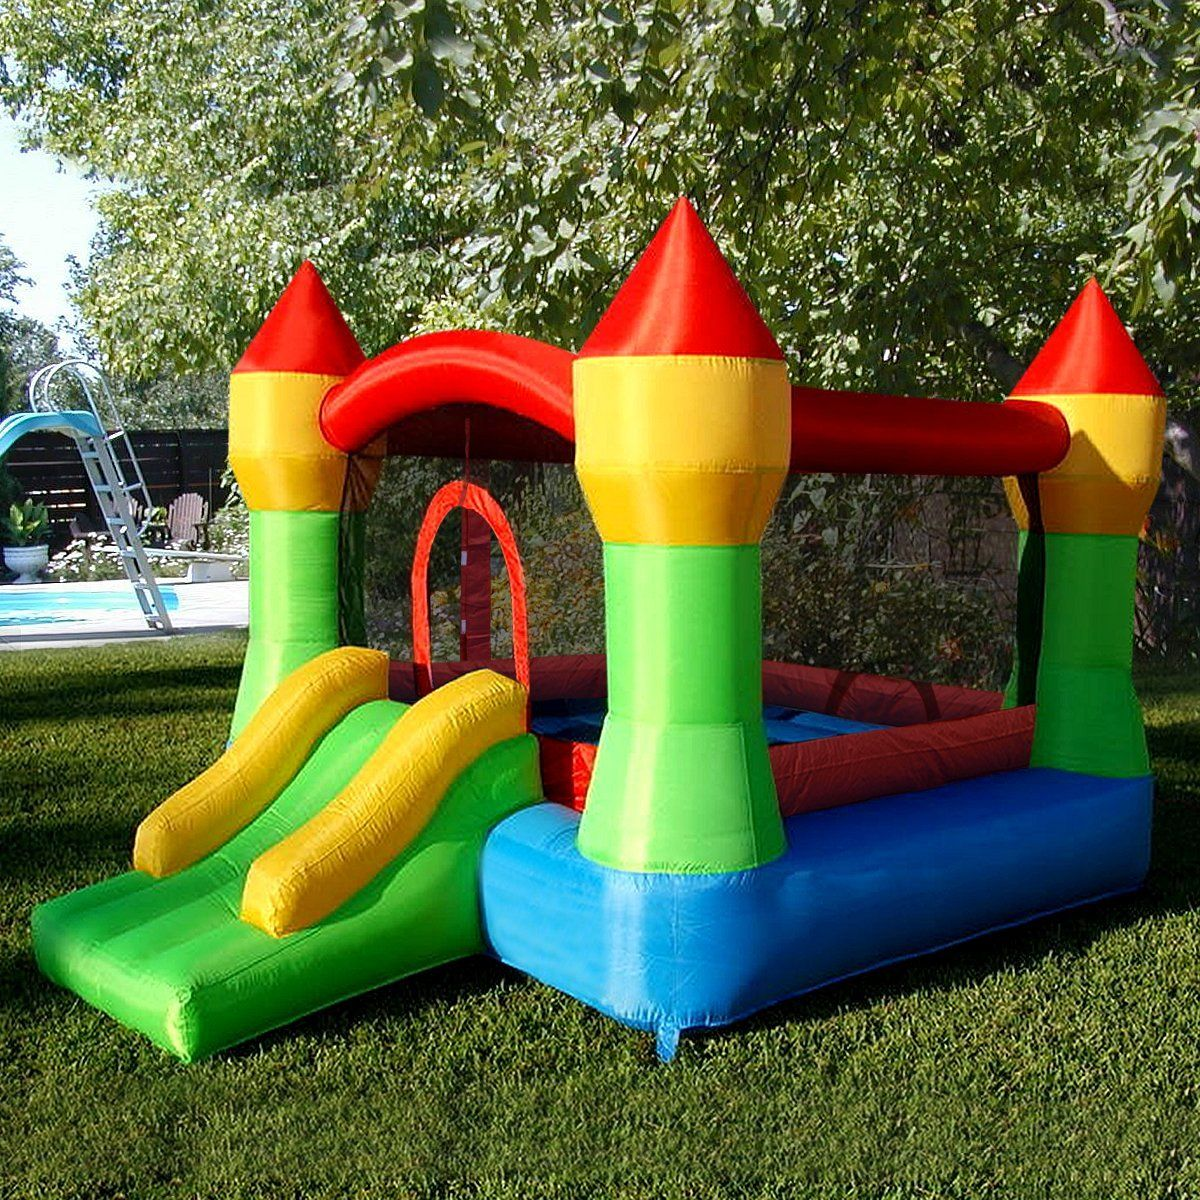 Inflatable Mighty Bounce House Castle for $180 http://sylsdeals.com/inflatable-mighty-bounce-house-castle-for-180/